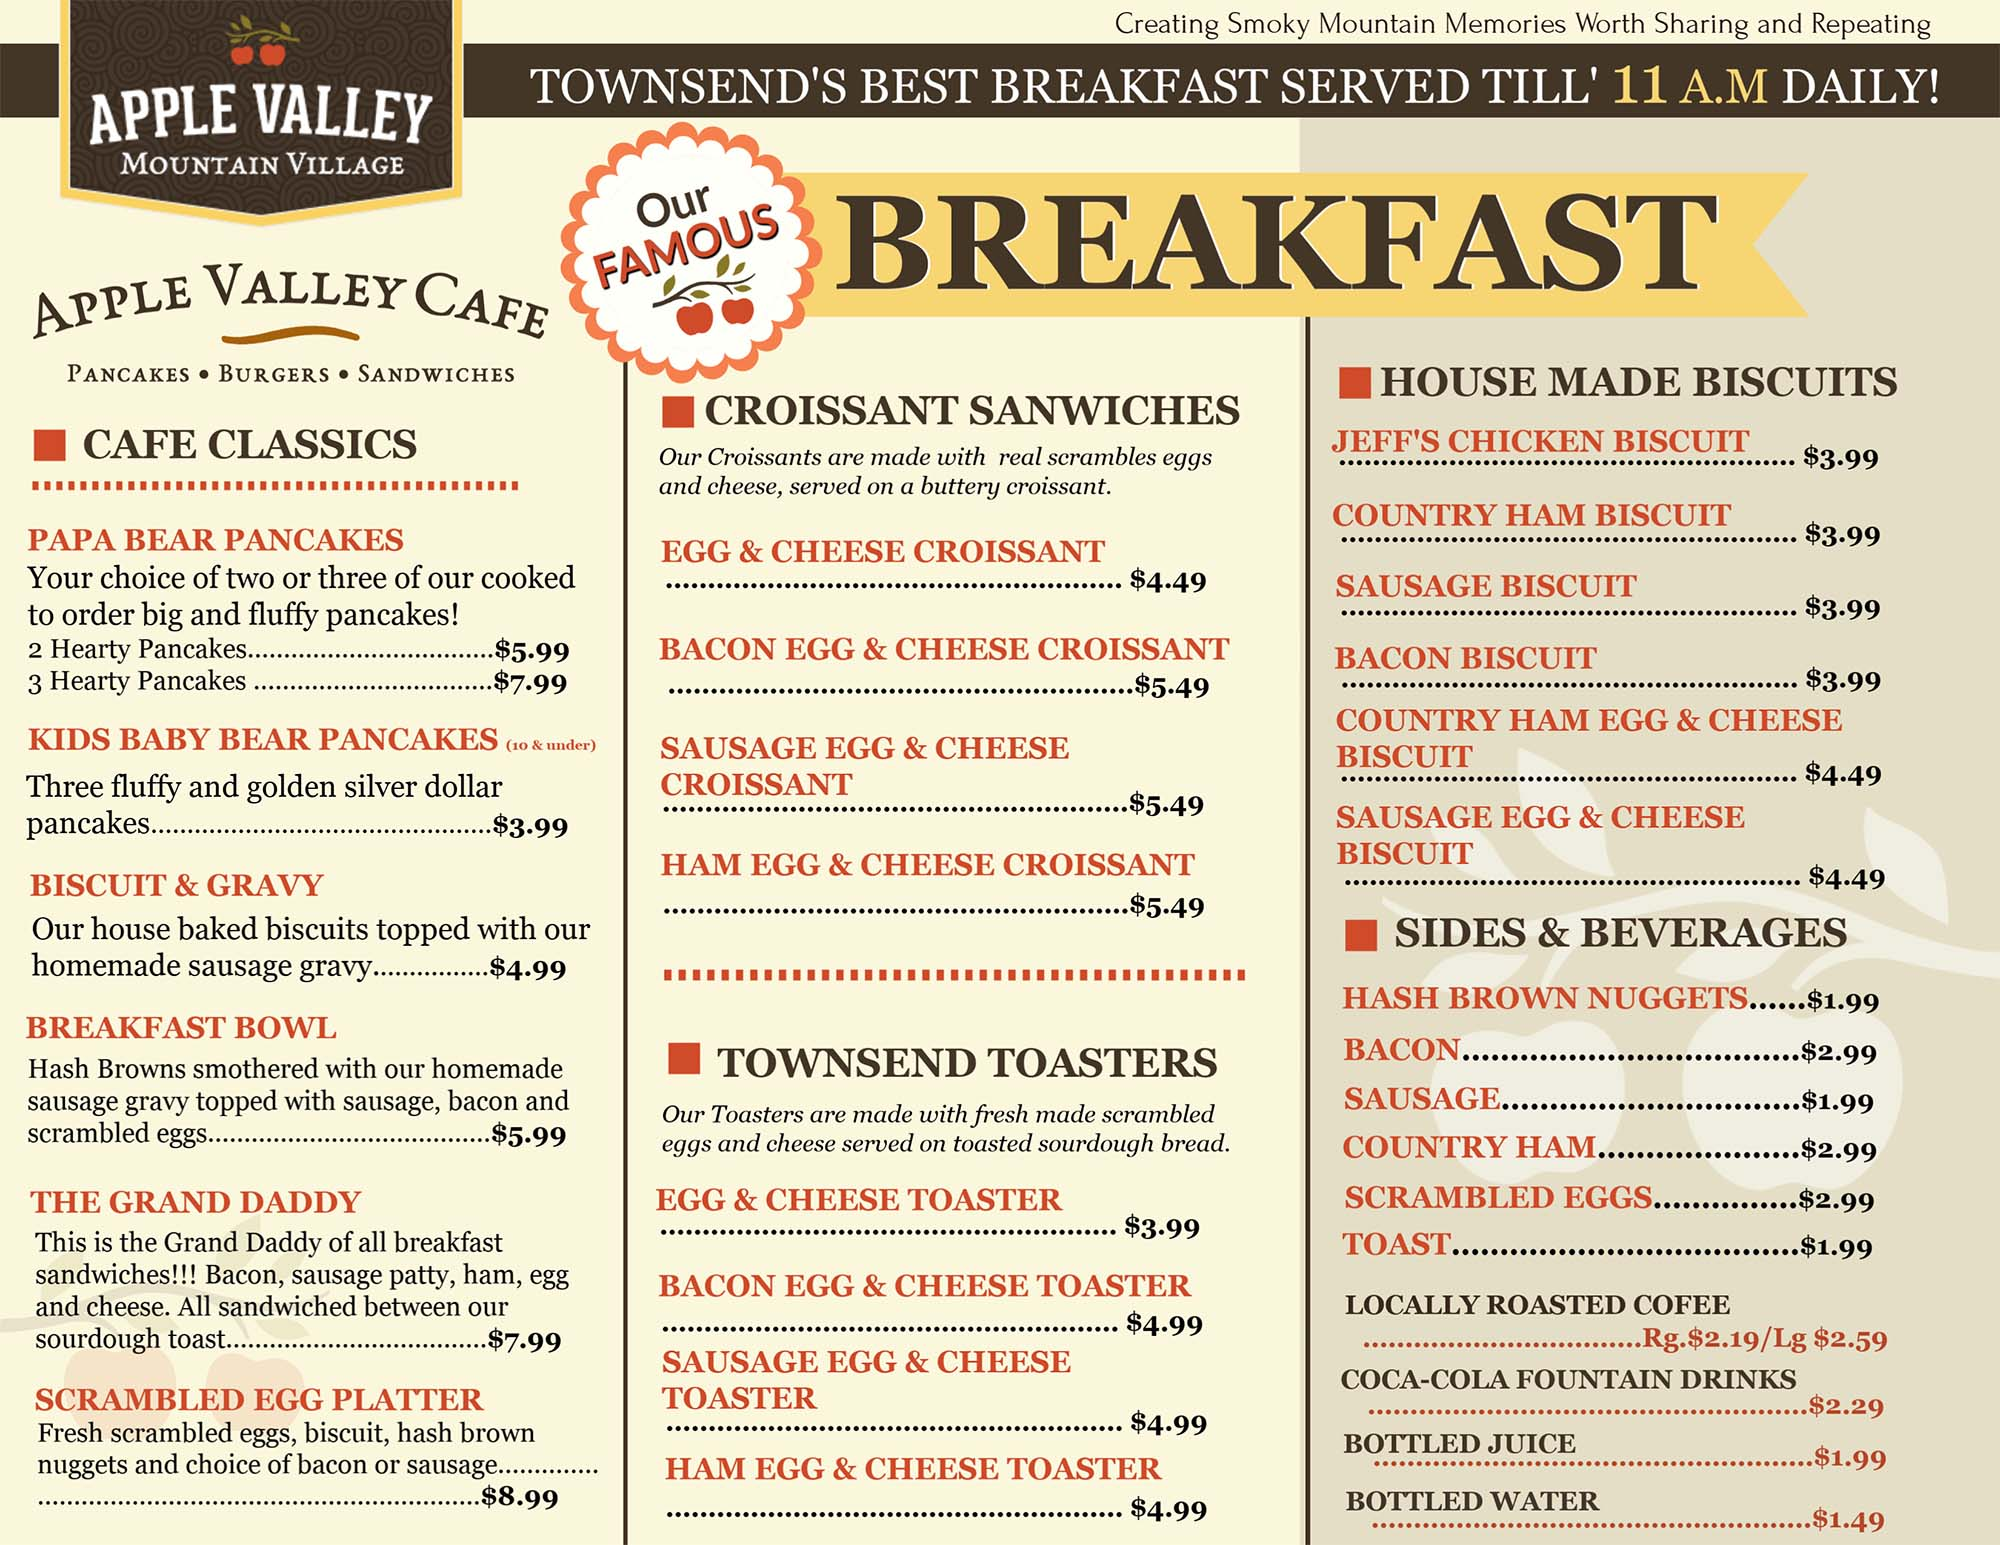 Apple Valley Cafe Breakfast Menu